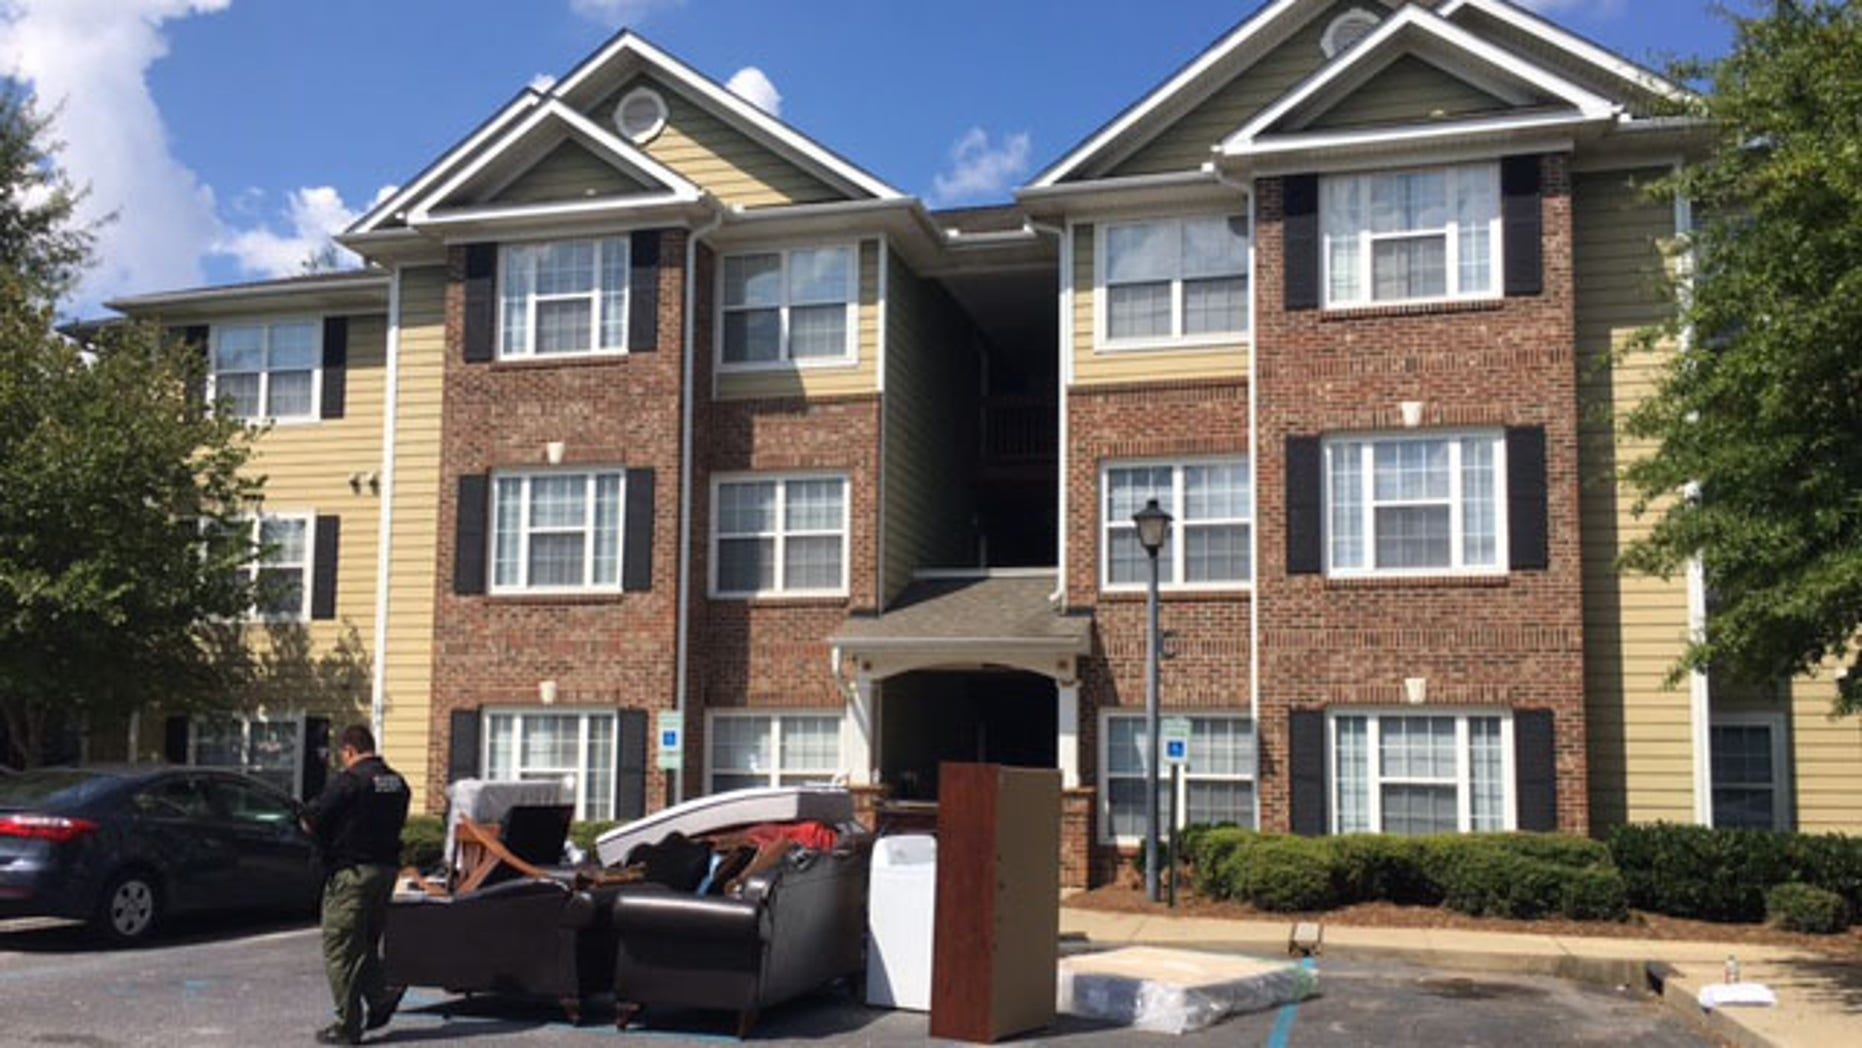 The remains of a baby was found at an apartment complex in Fountain Inn, police said.